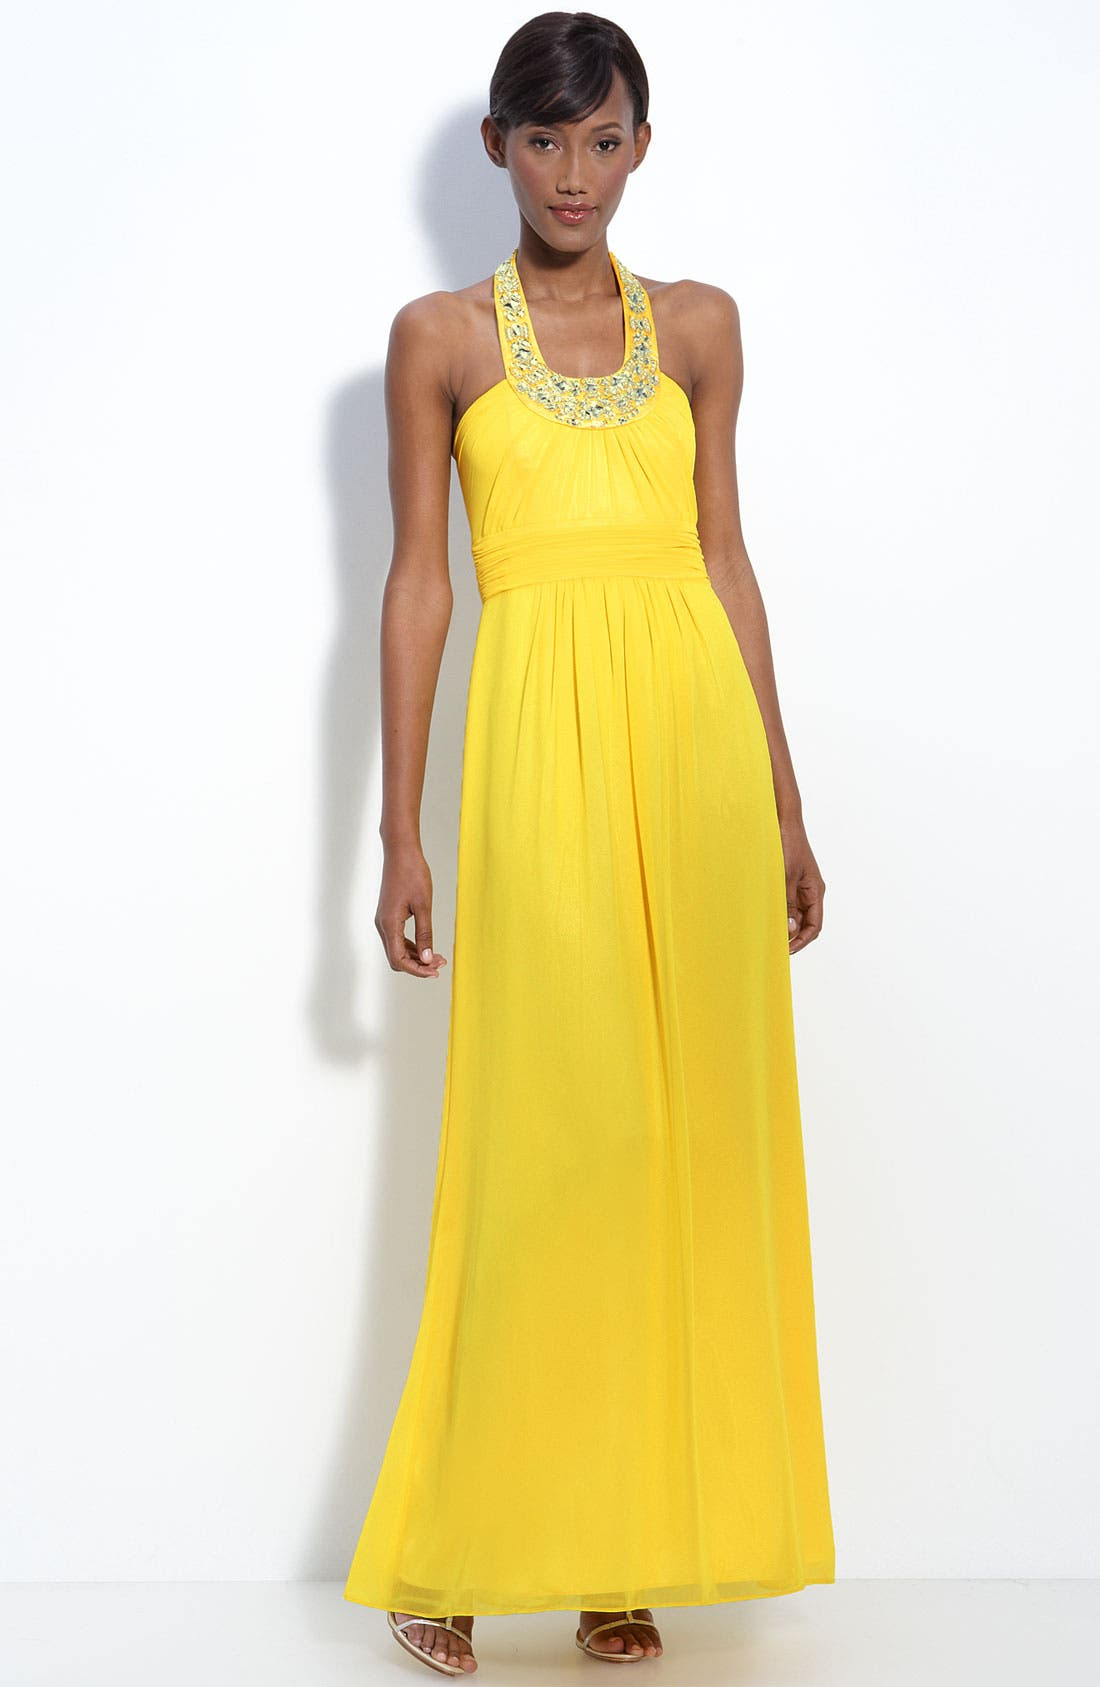 Alternate Image 1 Selected - Laundry by Shelli Segal Beaded Chiffon Halter Gown